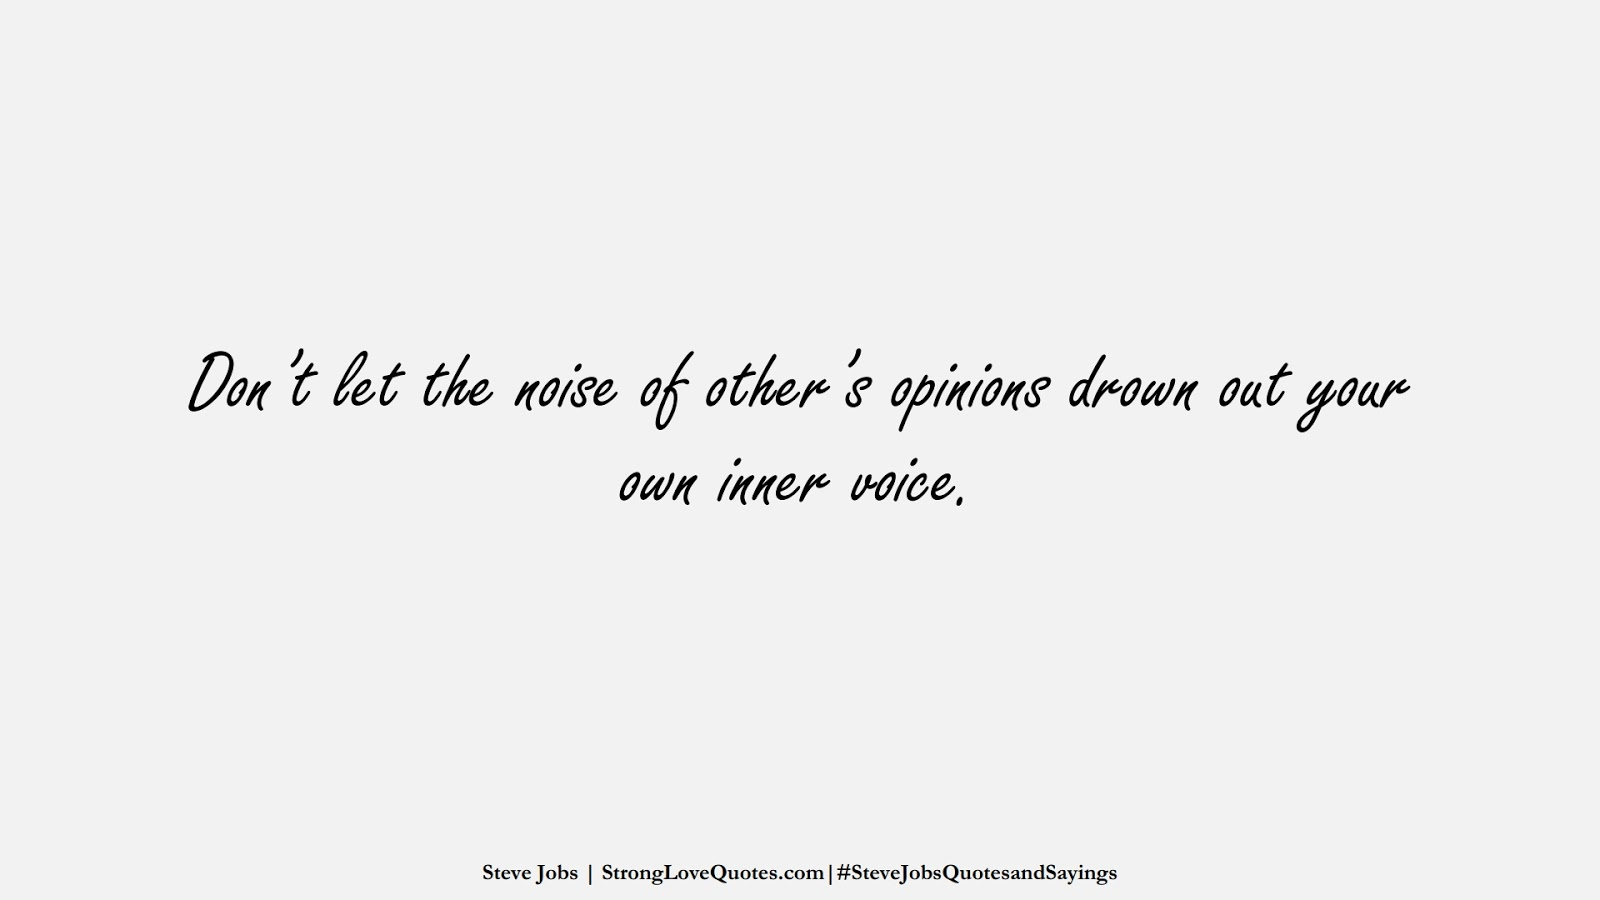 Don't let the noise of other's opinions drown out your own inner voice. (Steve Jobs);  #SteveJobsQuotesandSayings